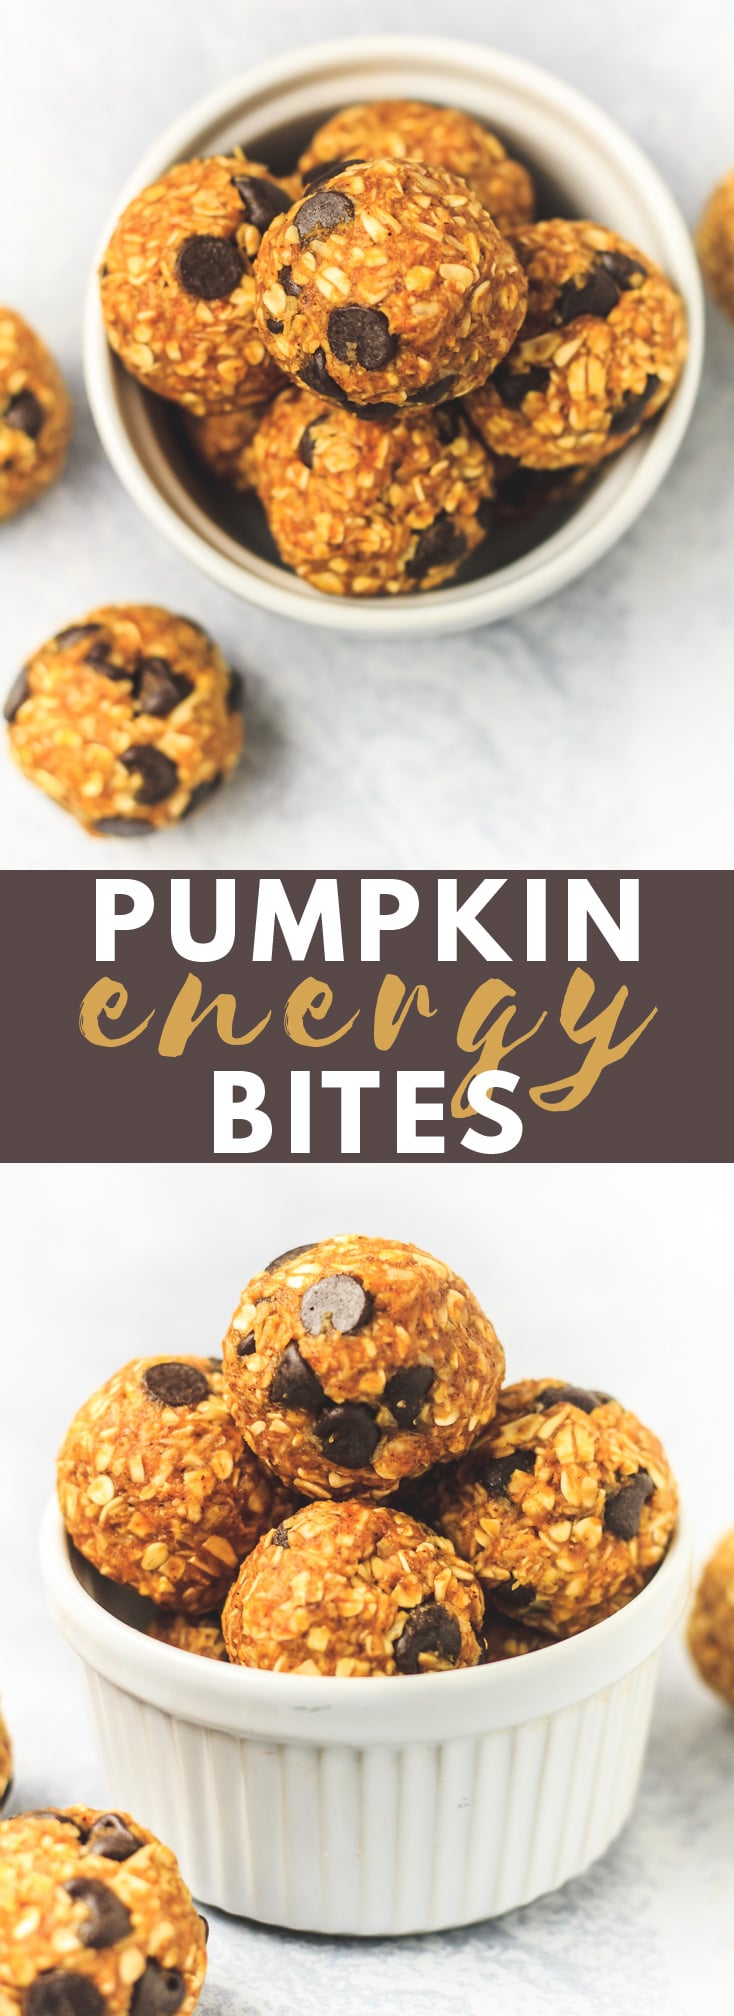 Pumpkin Energy Bites